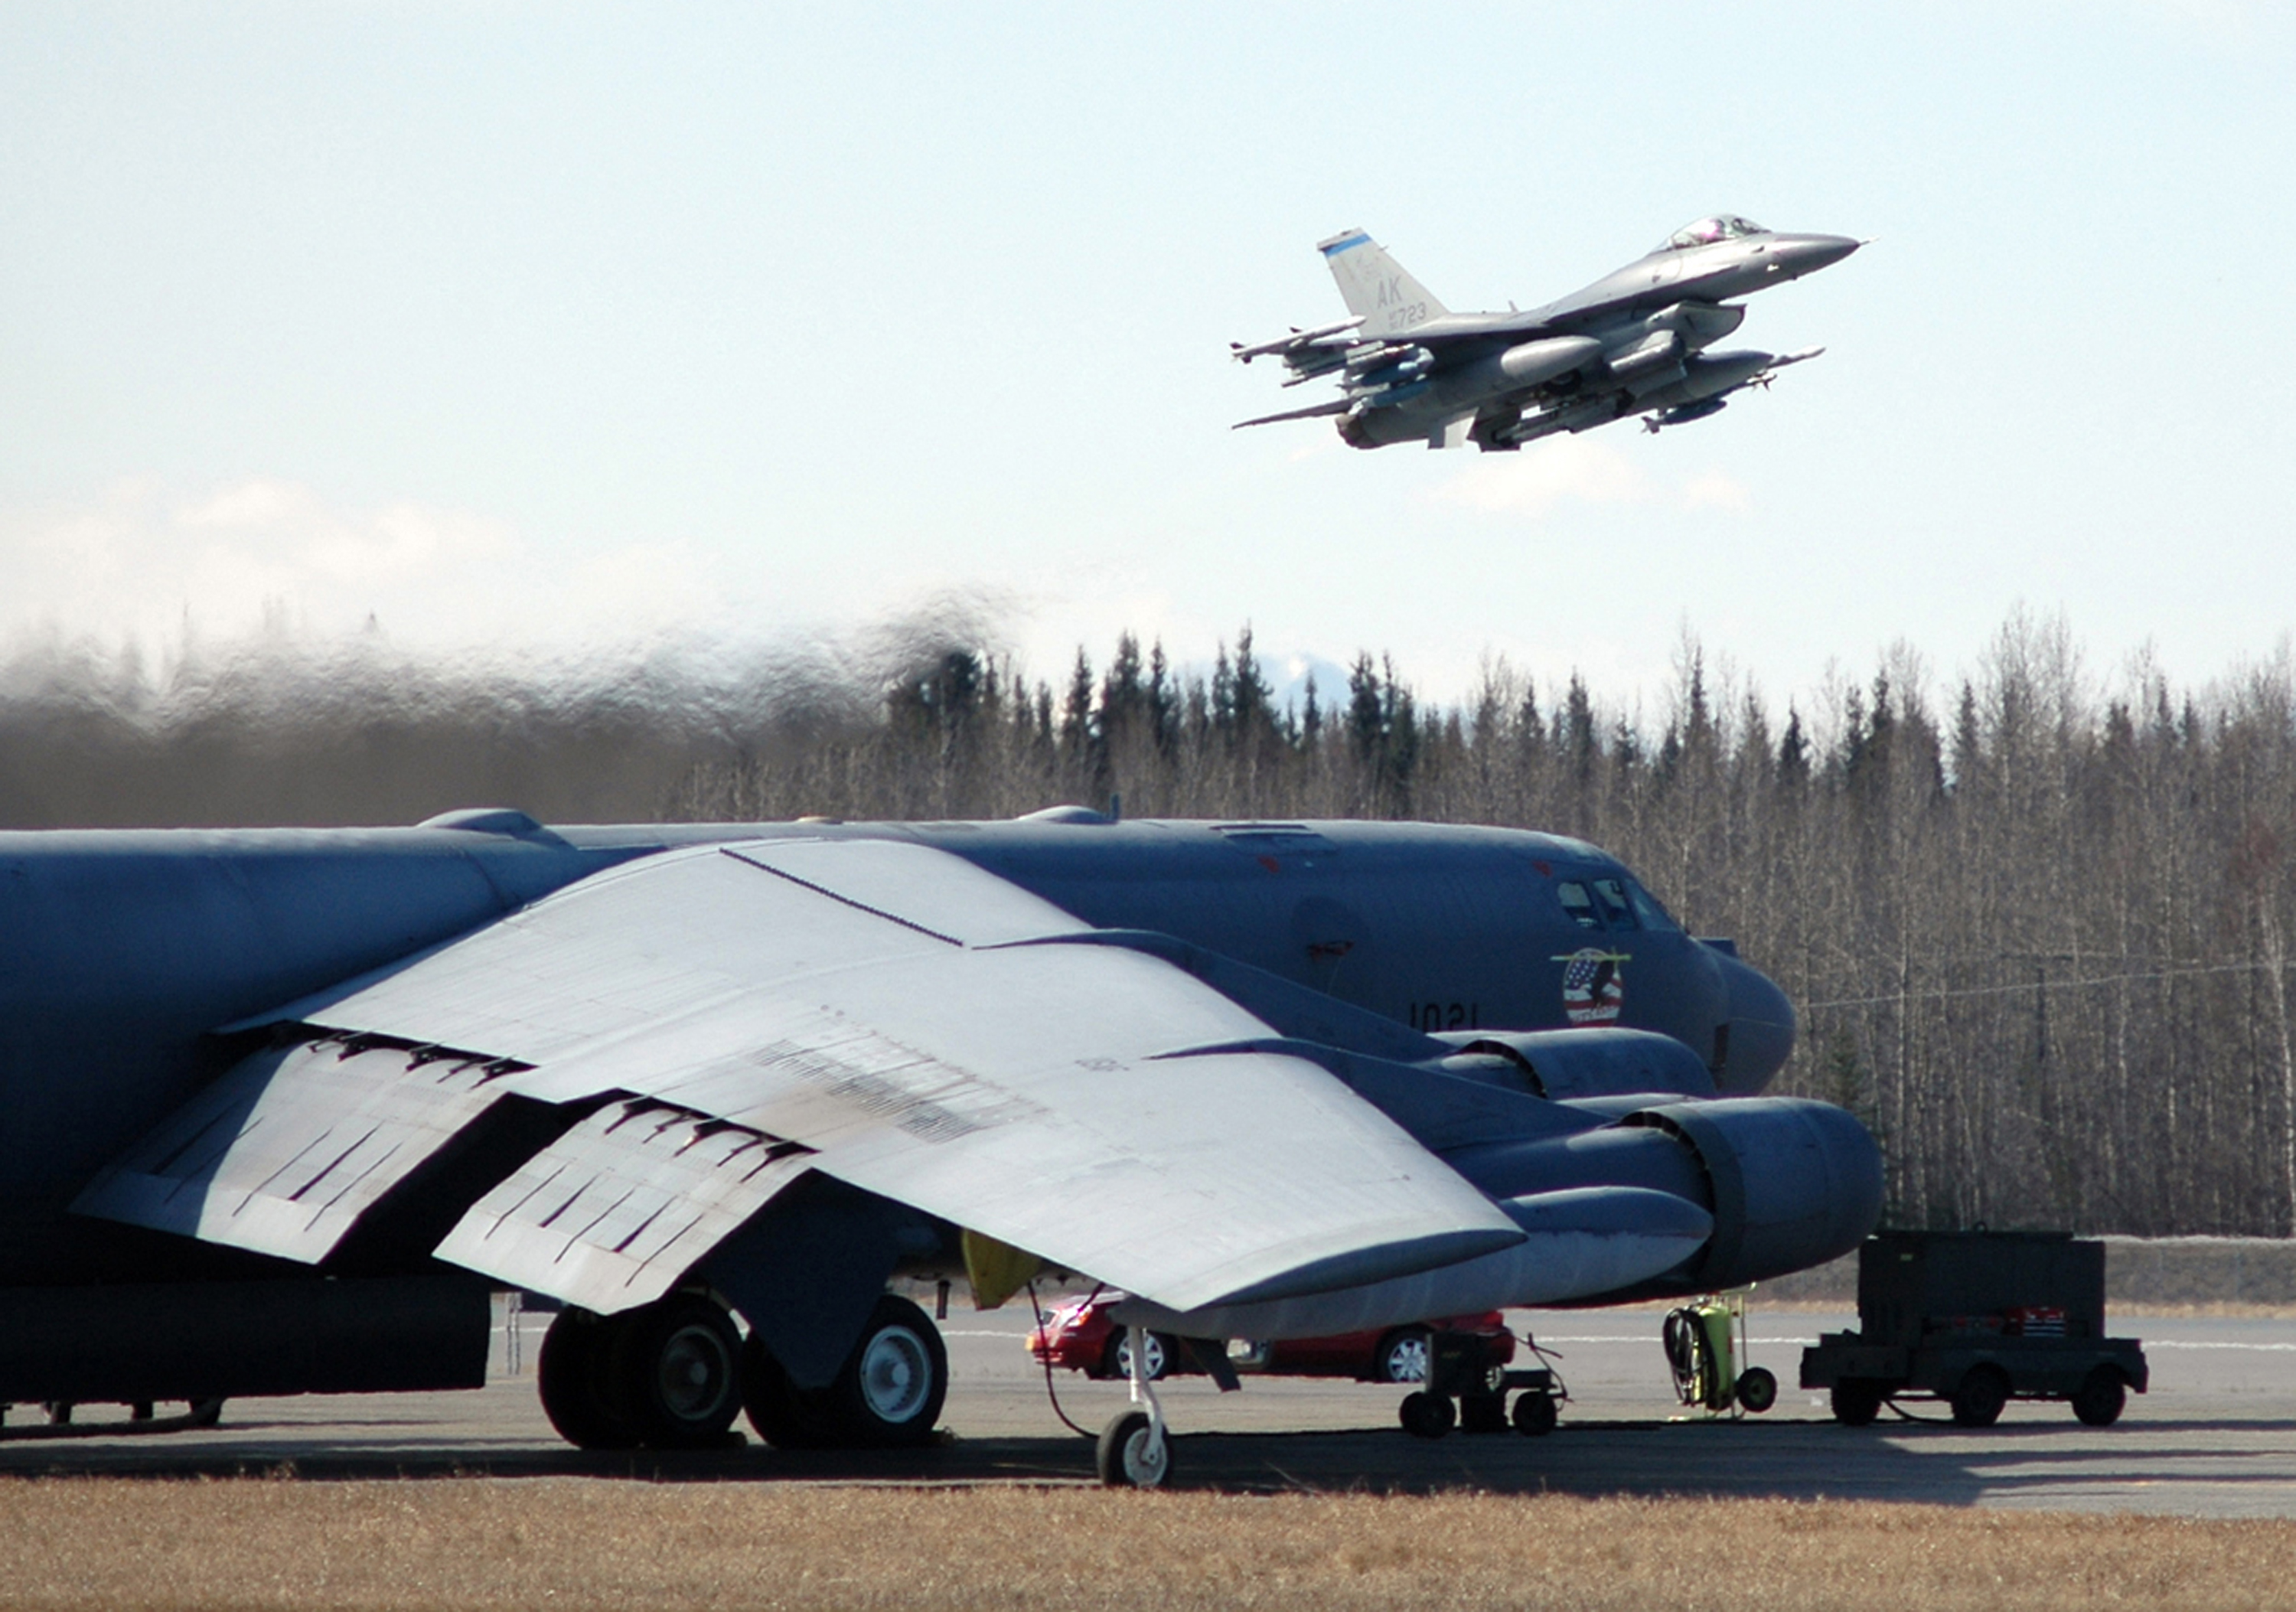 eielson afb mature women dating site Watterson construction has been awarded a contract to design and construct an f-35a aircraft weather shelter at eielson air force base in alaska.